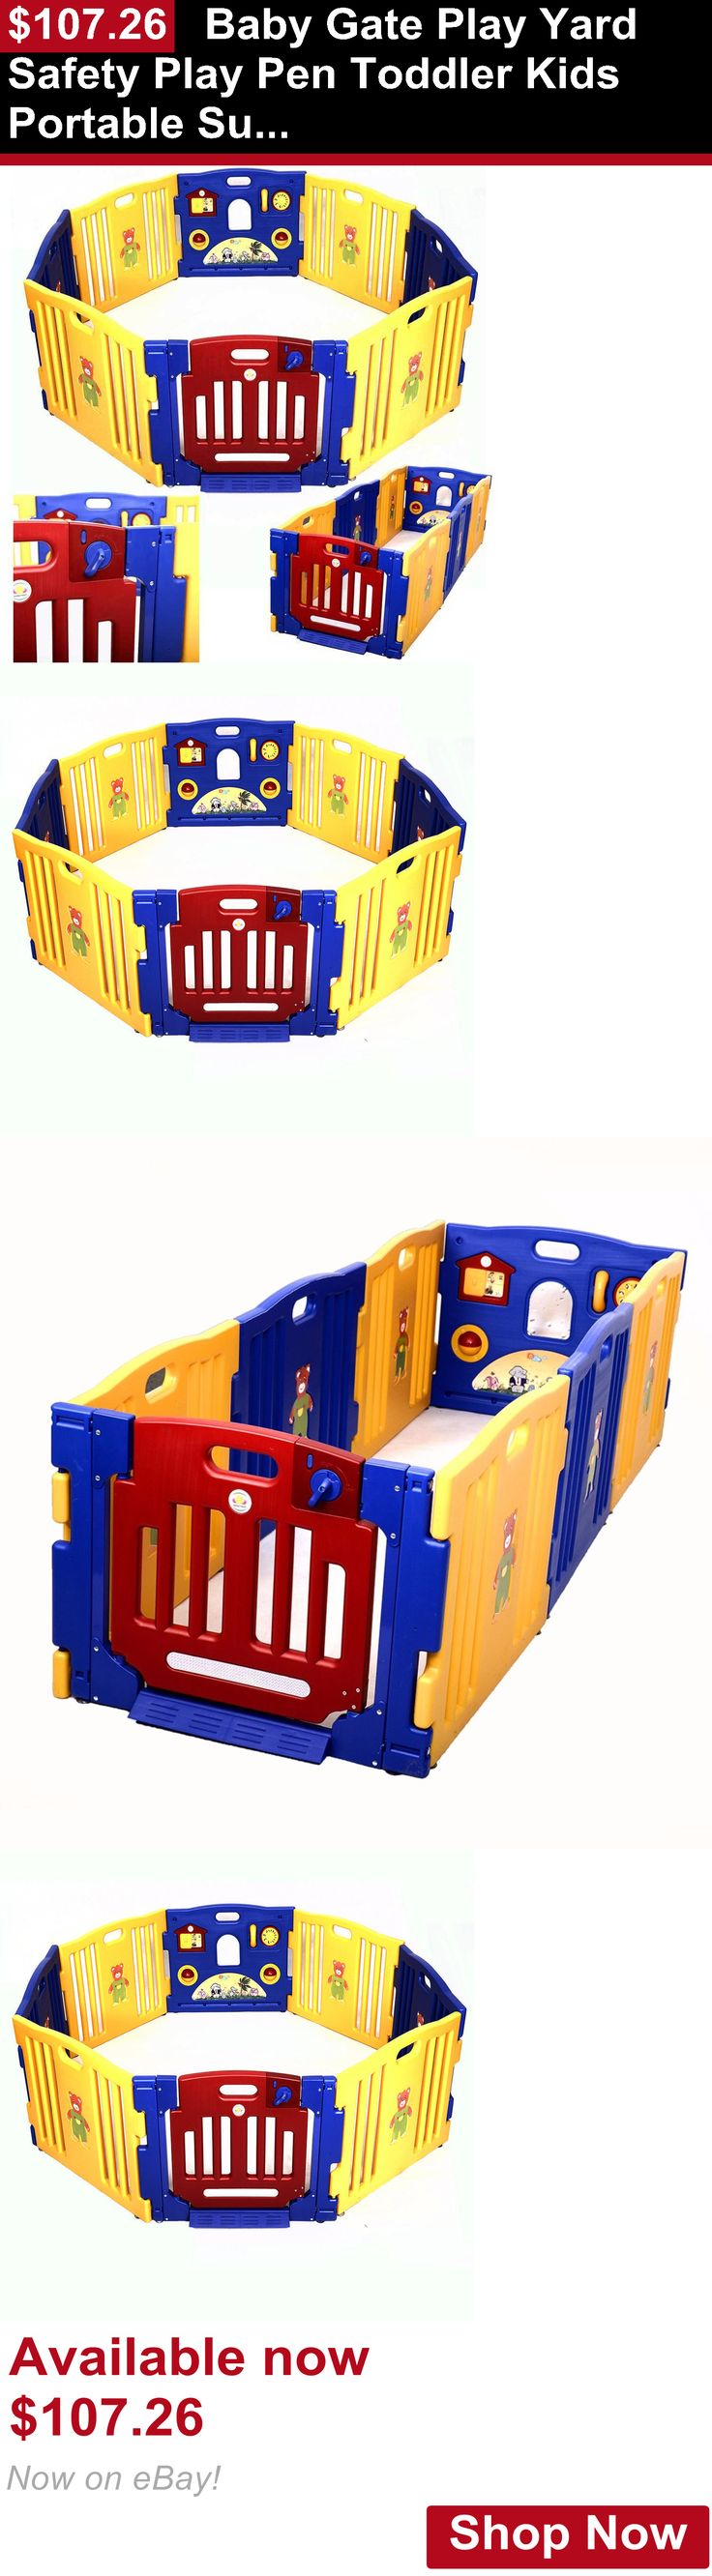 Baby Safety Gates: Baby Gate Play Yard Safety Play Pen Toddler Kids Portable Super Pet Indoor Dog BUY IT NOW ONLY: $107.26